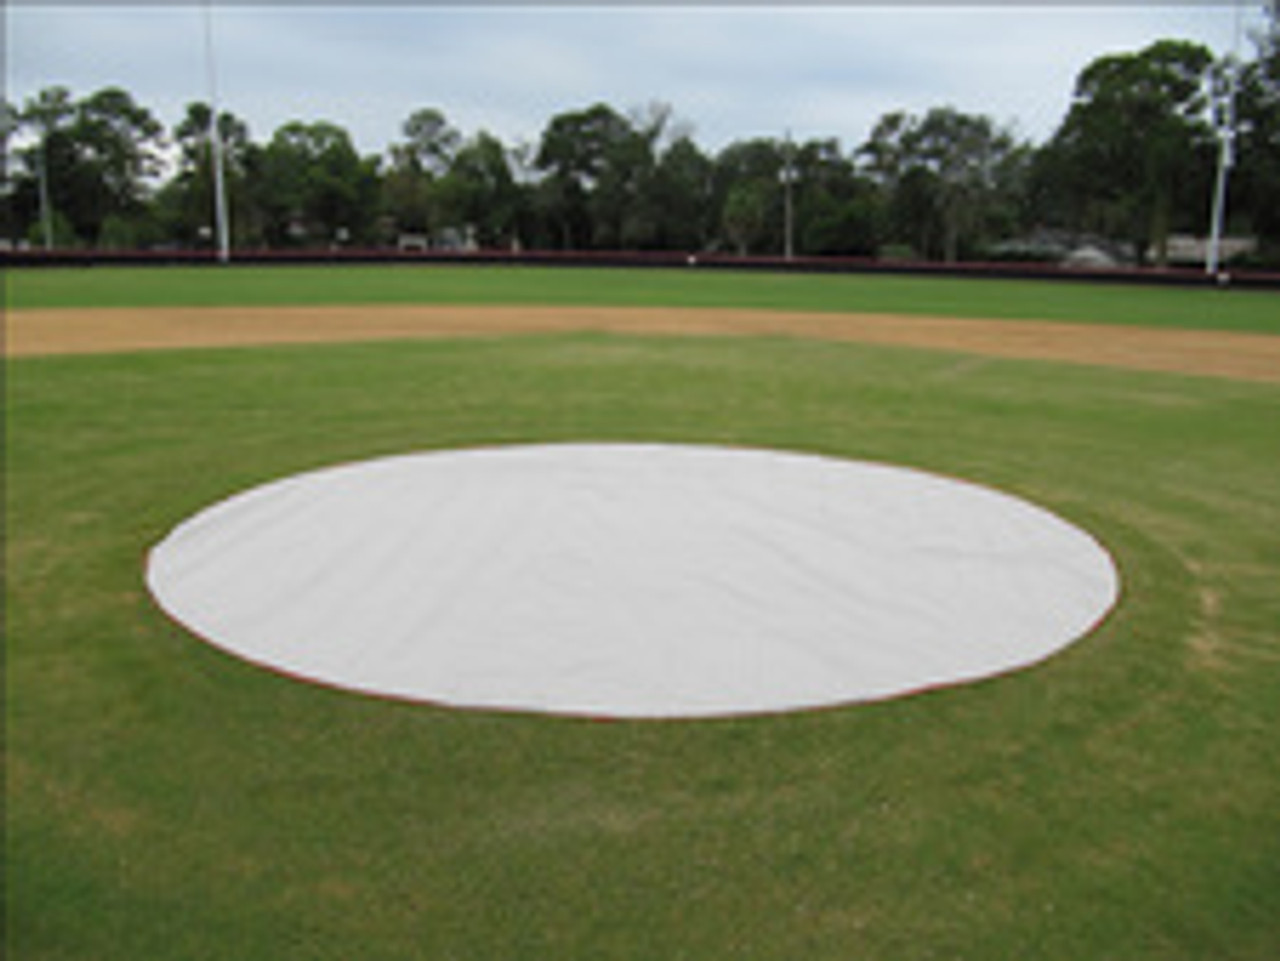 Weighted 6 oz. Youth Kit Mound and Base Protectors - Baseball Field Covers